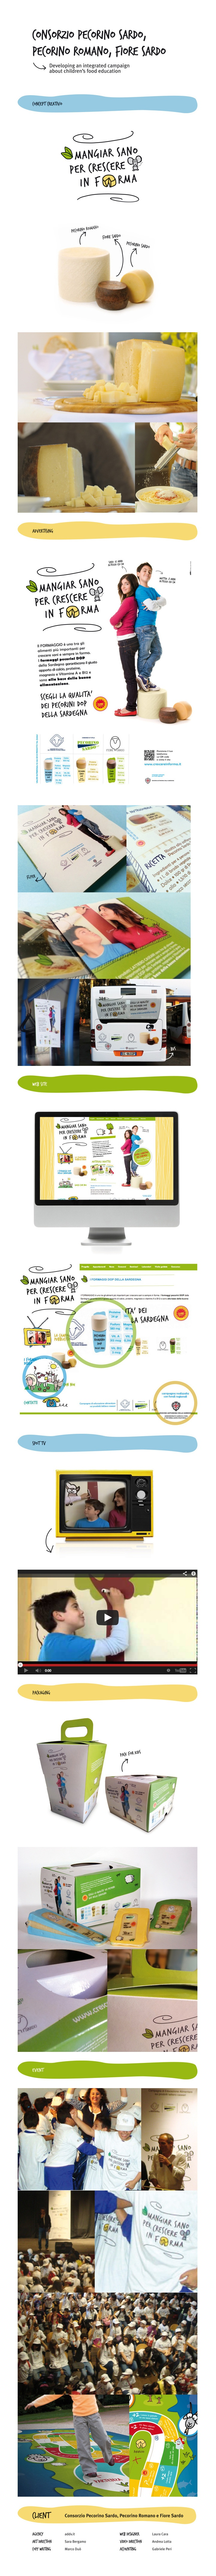 Developing an integrated campaign   about children's food education